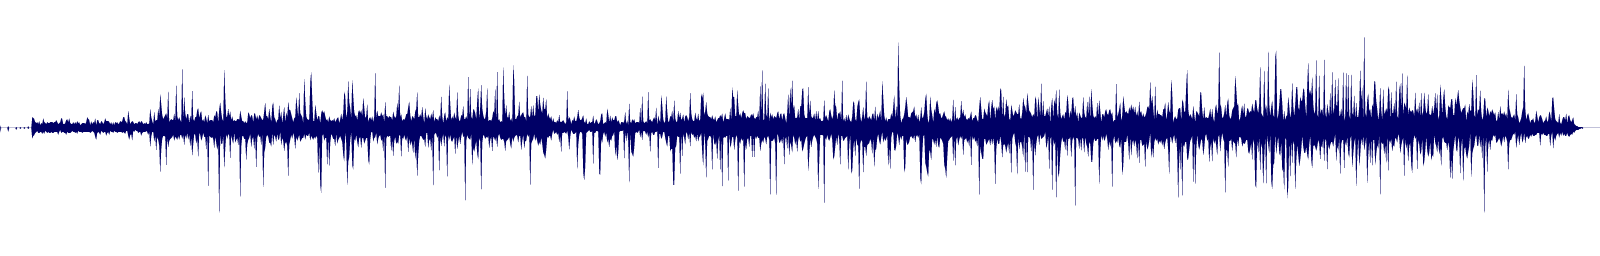 waveform of track #135030